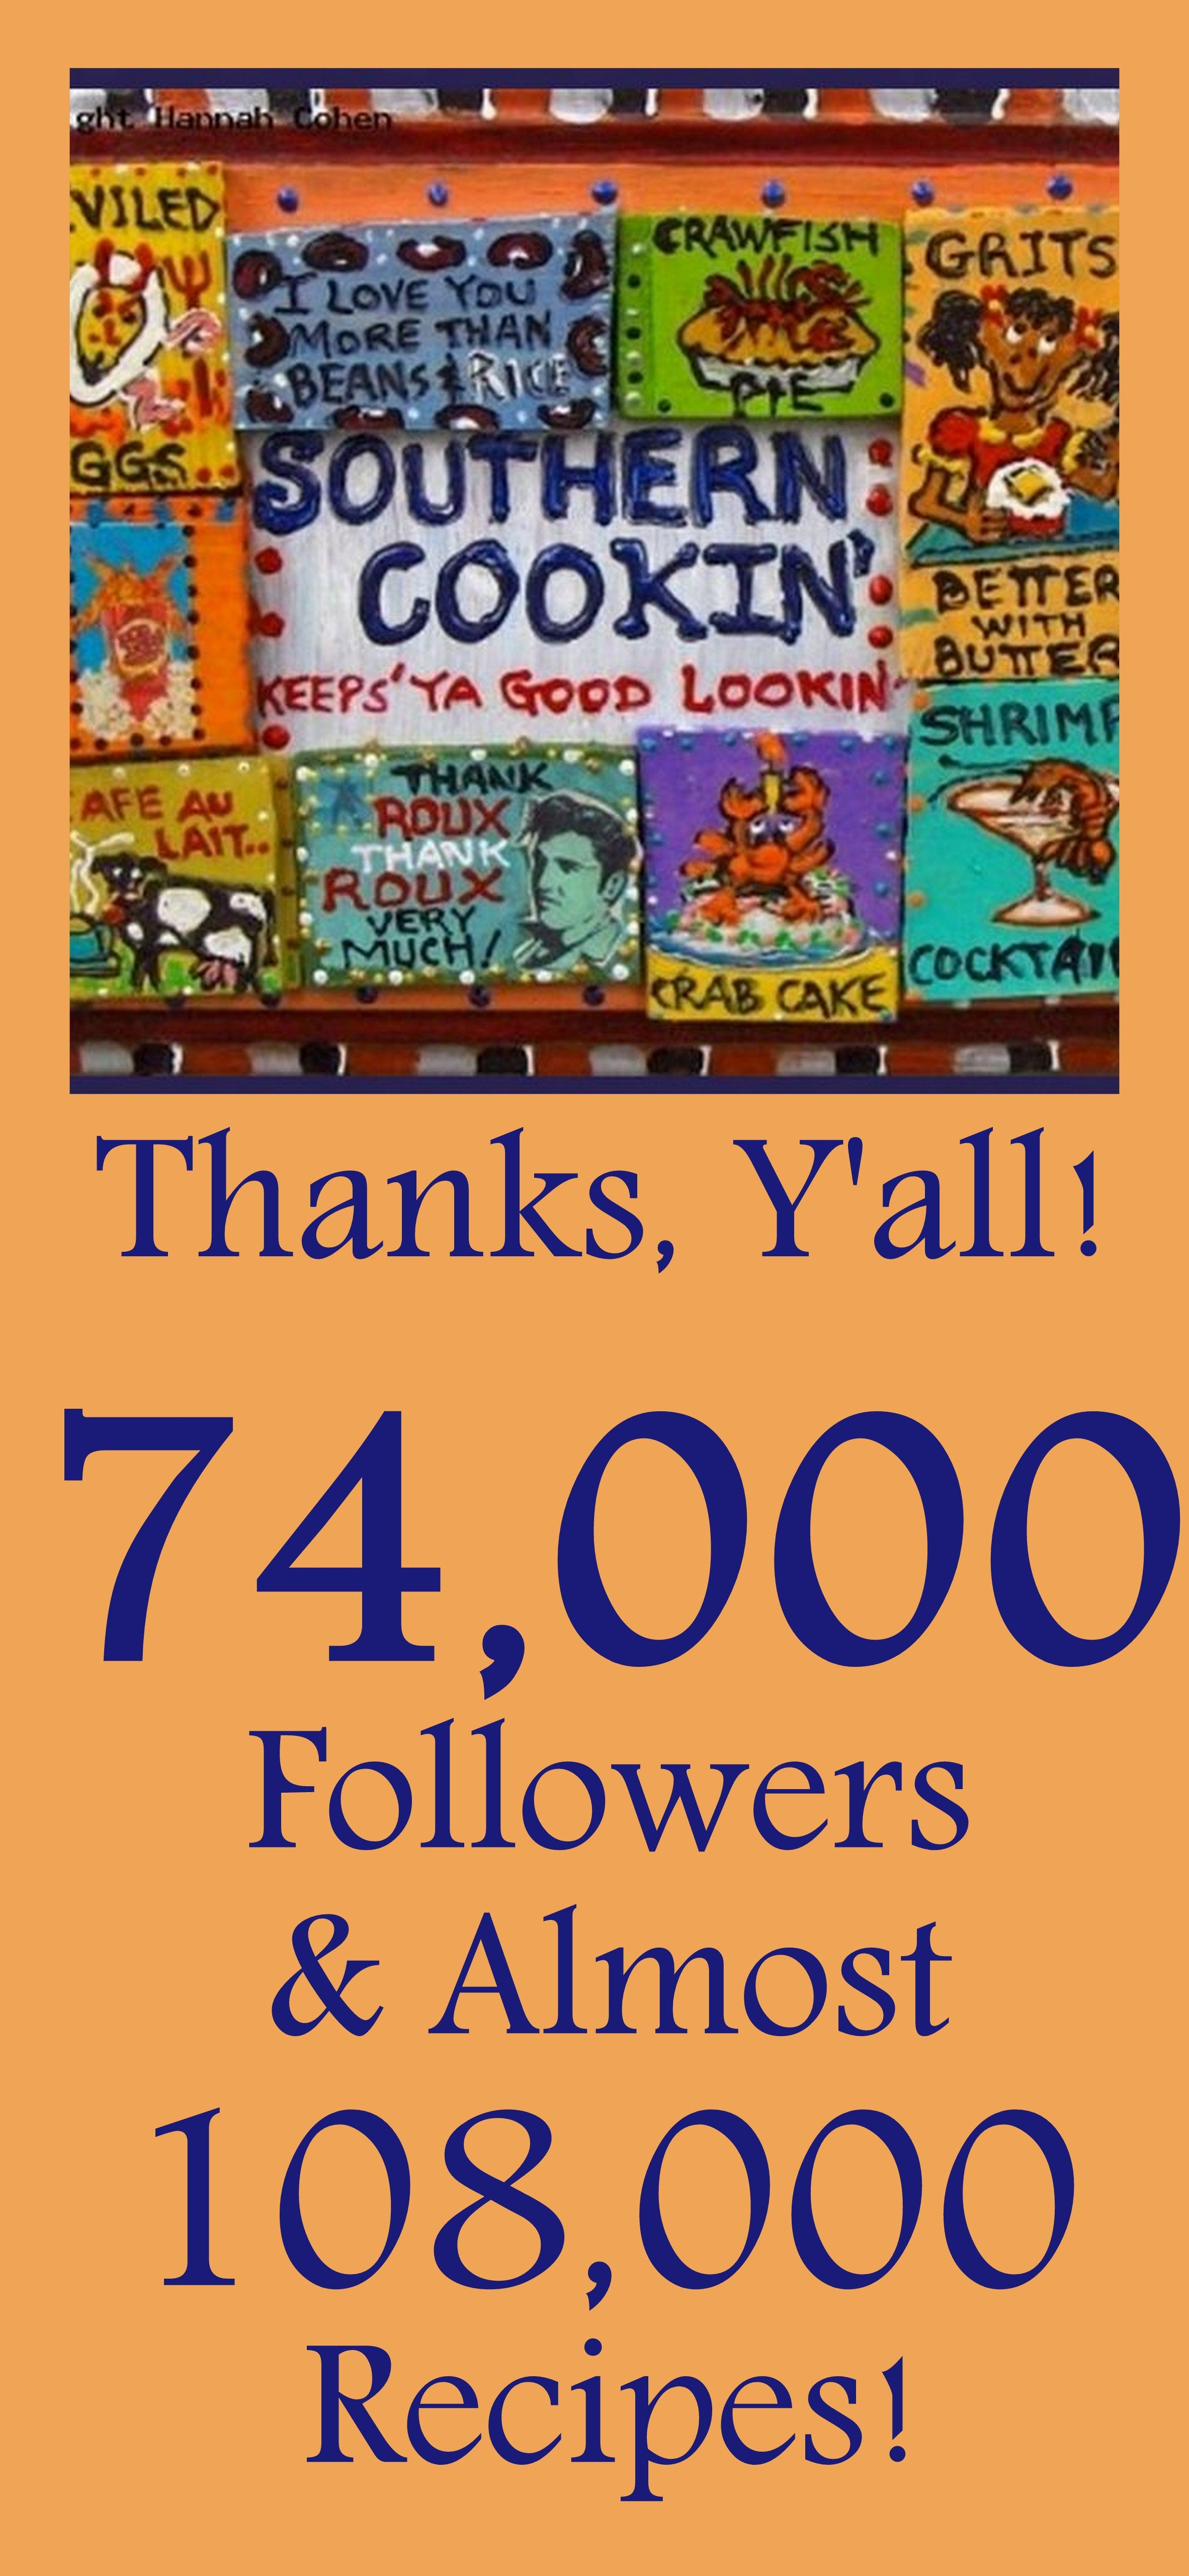 Over 75.000 Followers and nearly 108,000 yummy recipes... Thanks for celebrating Southern Cuisine {and my FABulous MIMI} with me!